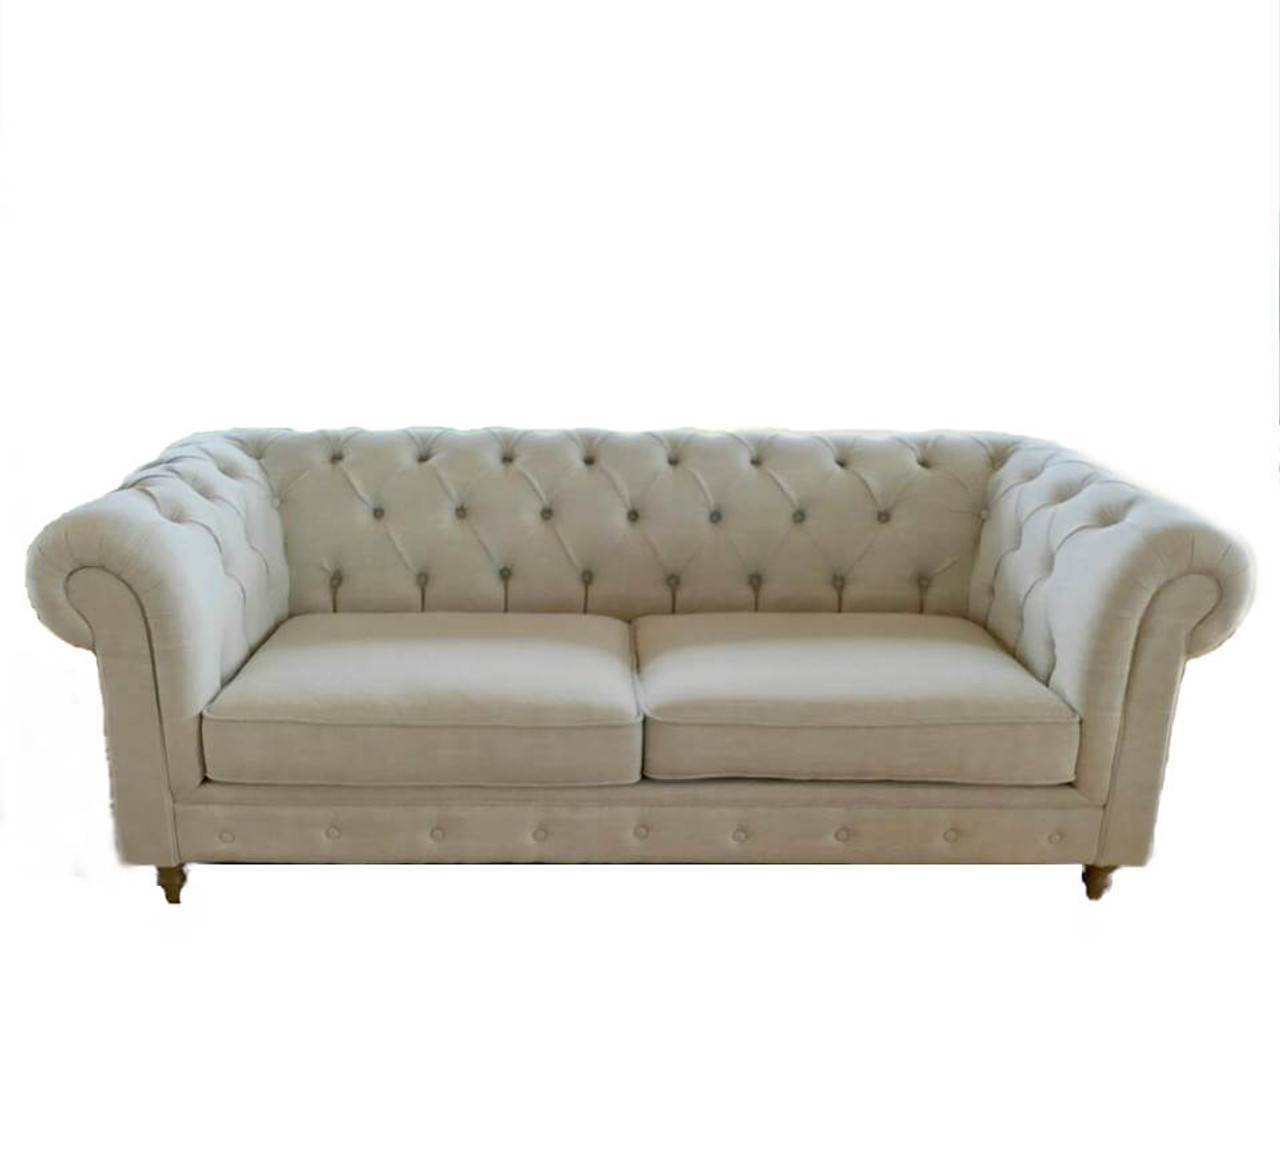 Hamptons Chesterfield Studded Three Seater Linen Sofa